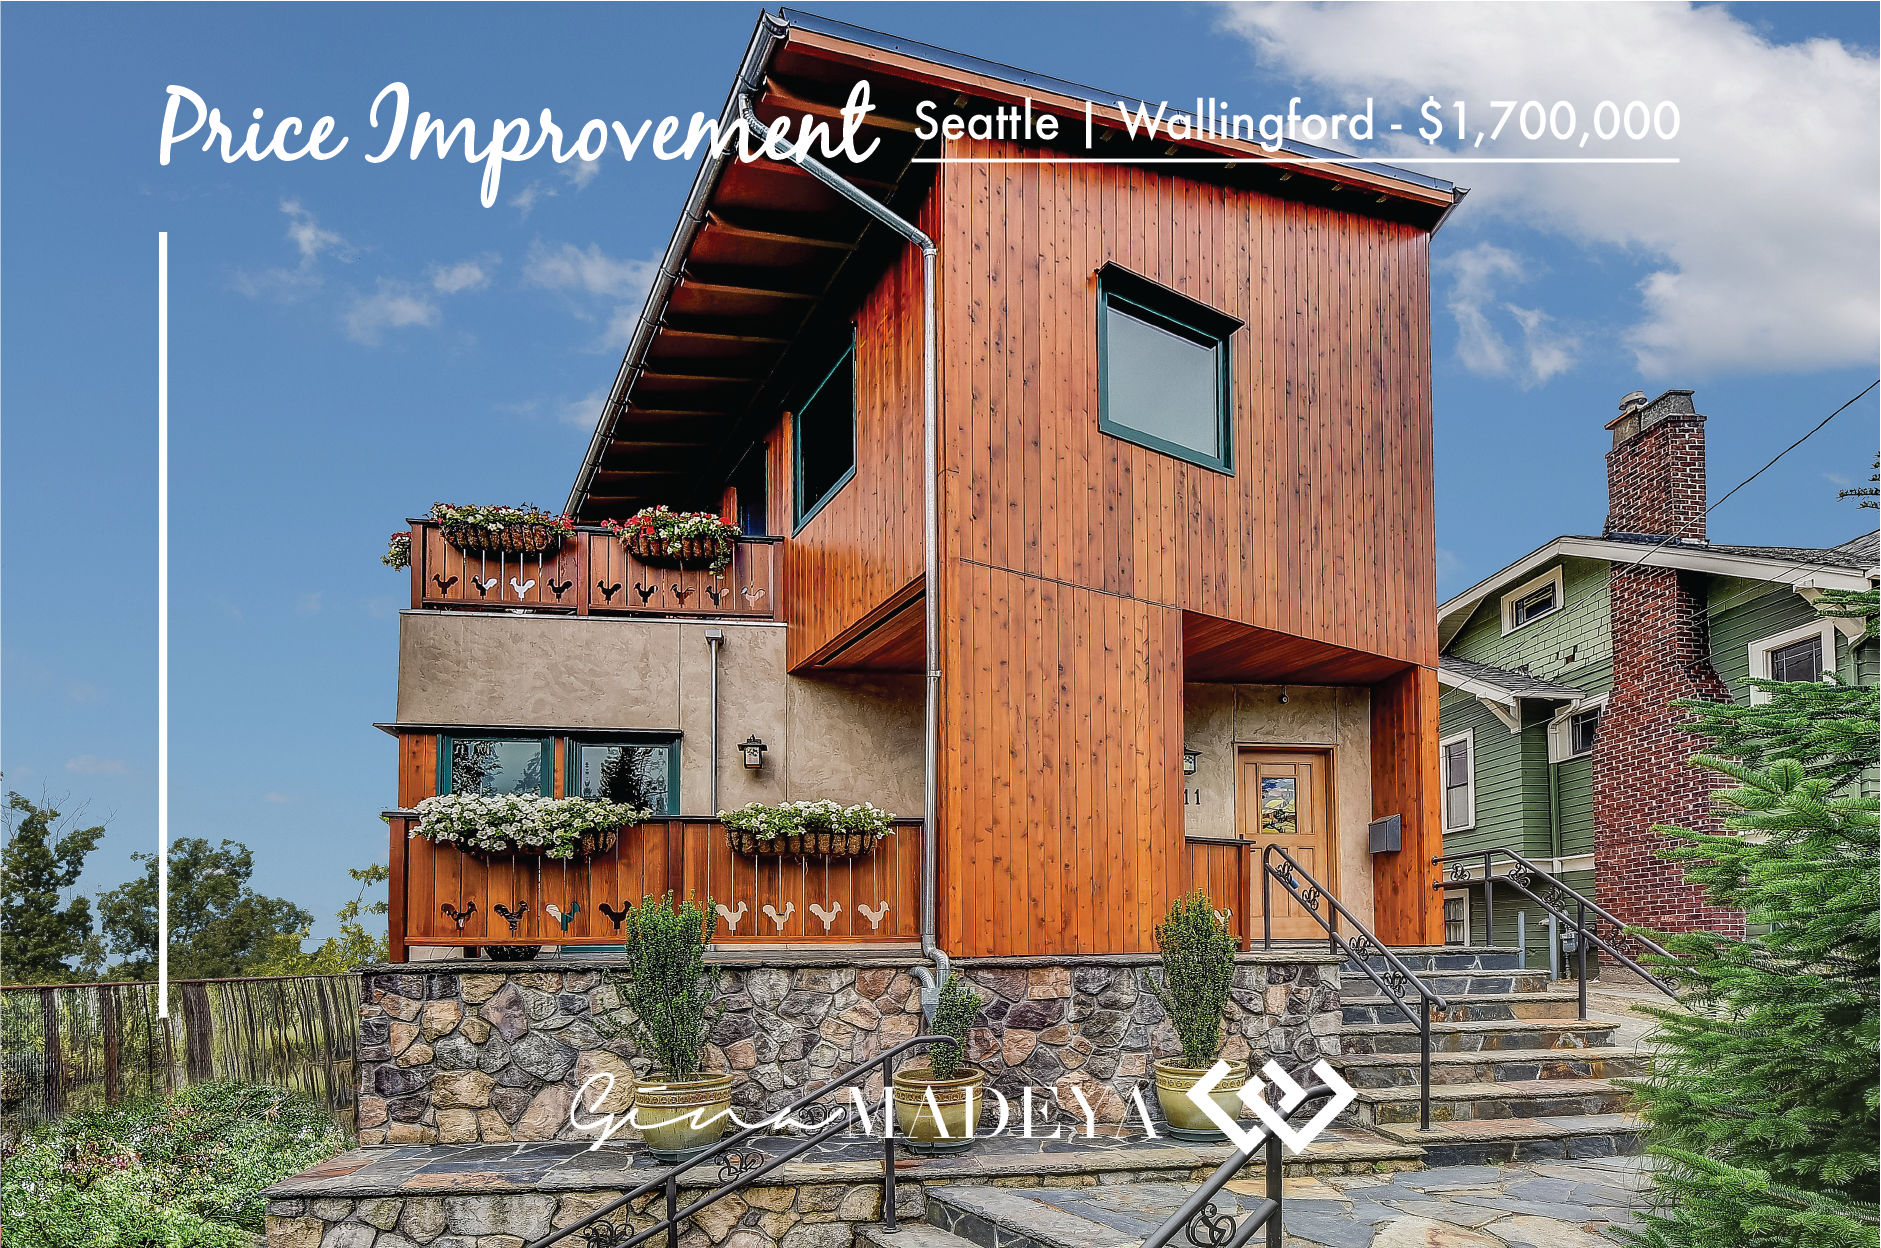 Price Improvement 4511 Thackeray Place NE, Seattle 98105 Cover 3.png